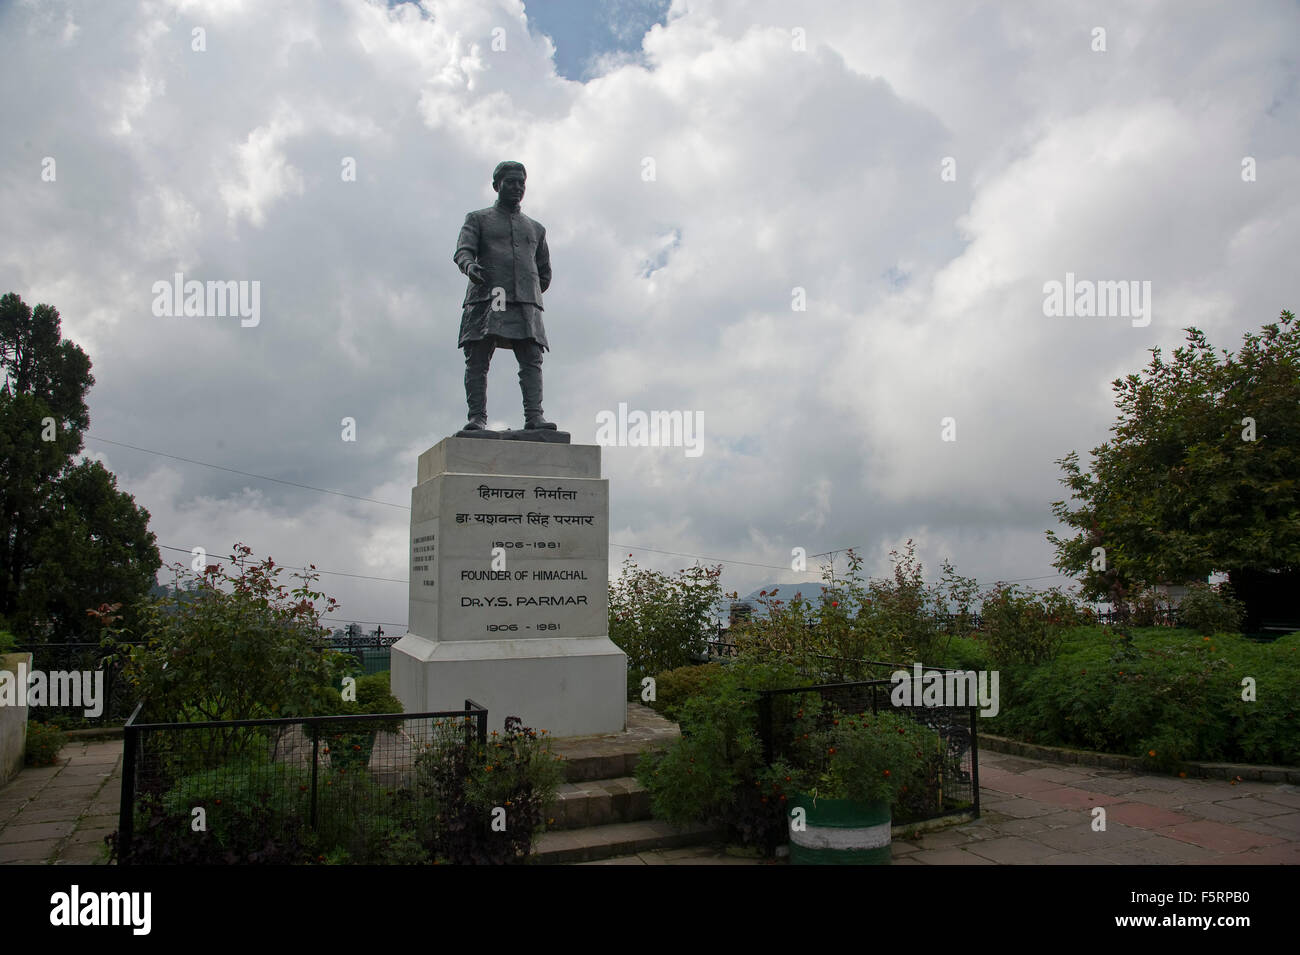 Statue of founder dr y s parmar ridge, shimla, himachal pradesh, india, asia - Stock Image